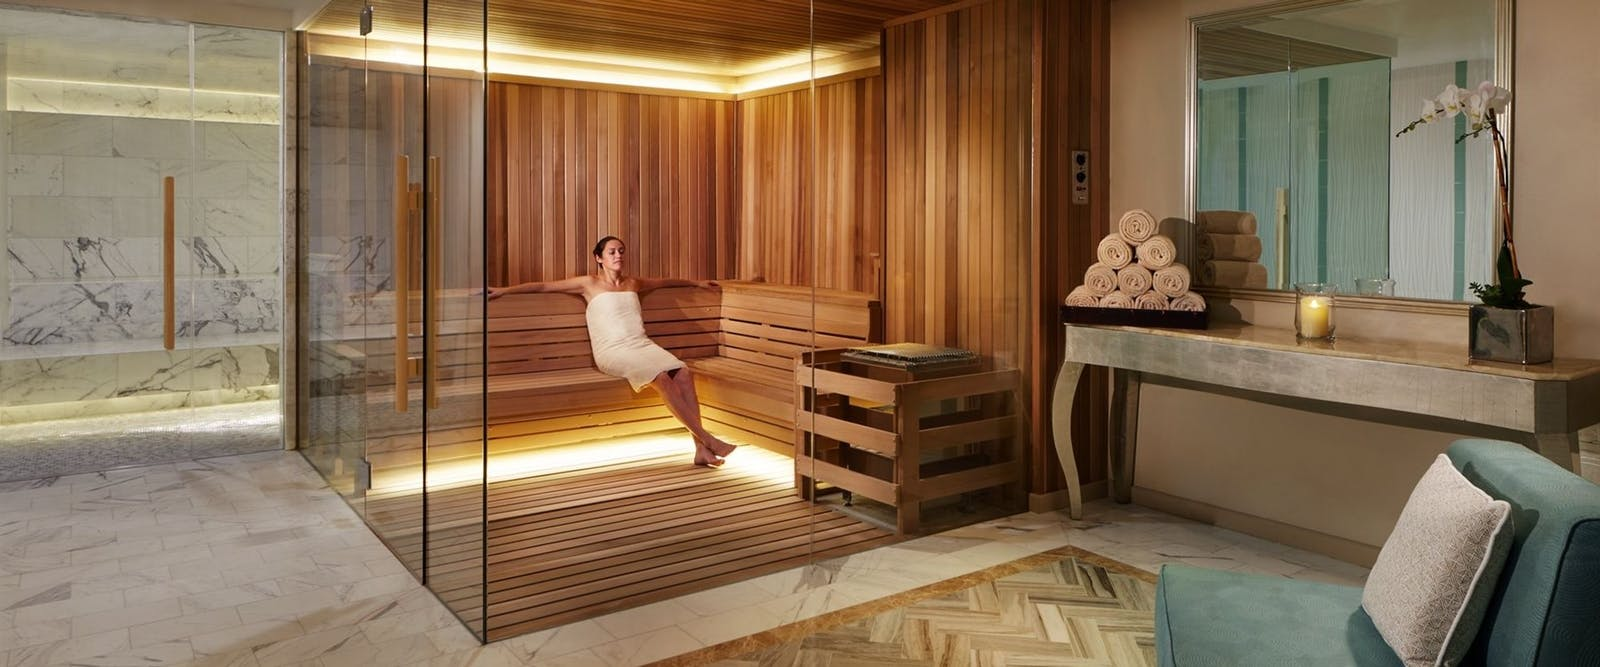 spa steam room and sauna